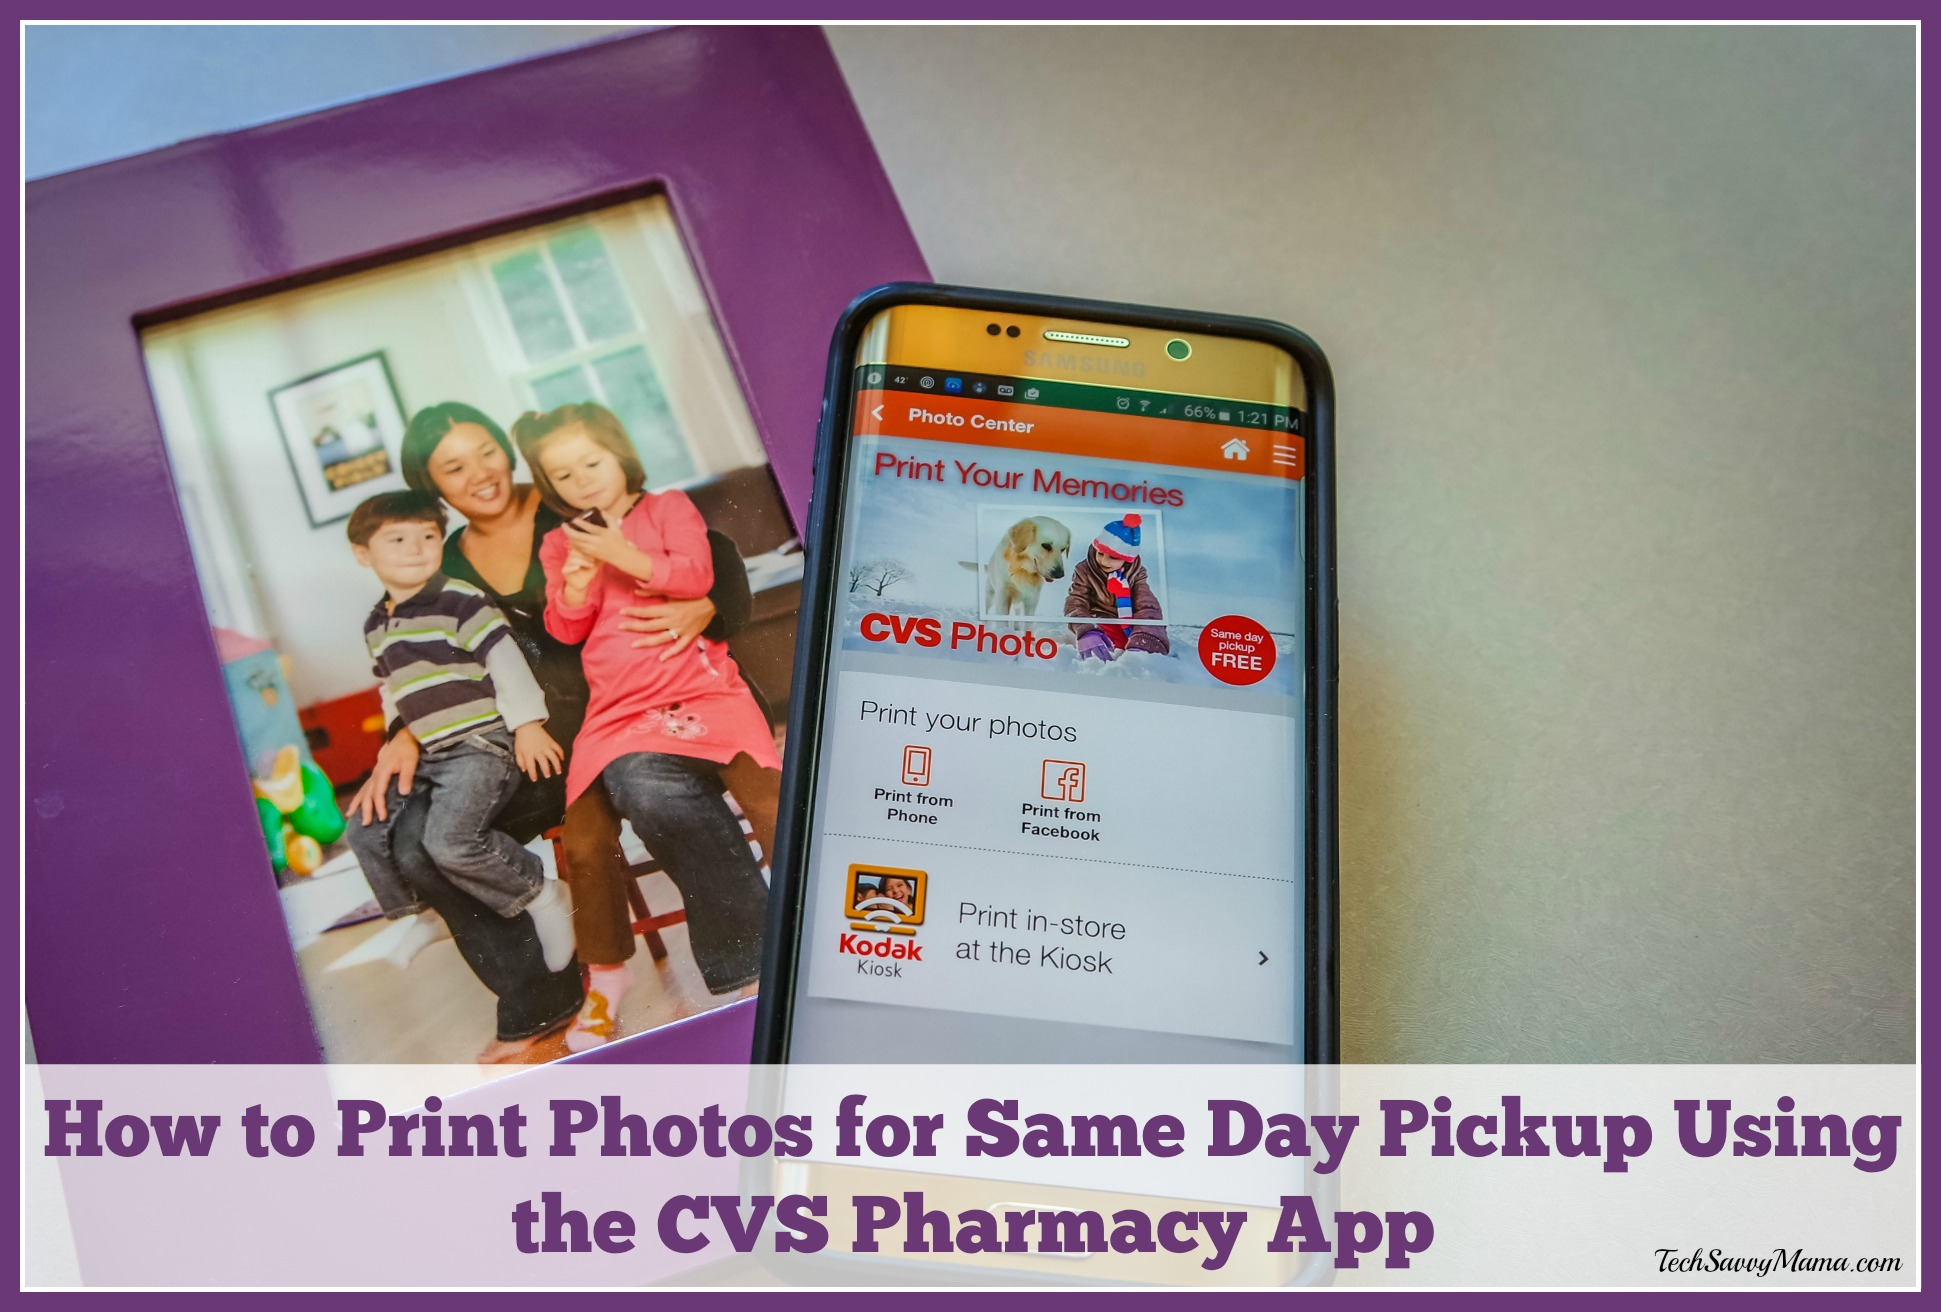 how to print photos for same day pickup using the cvs pharmacy app  mycvsapp